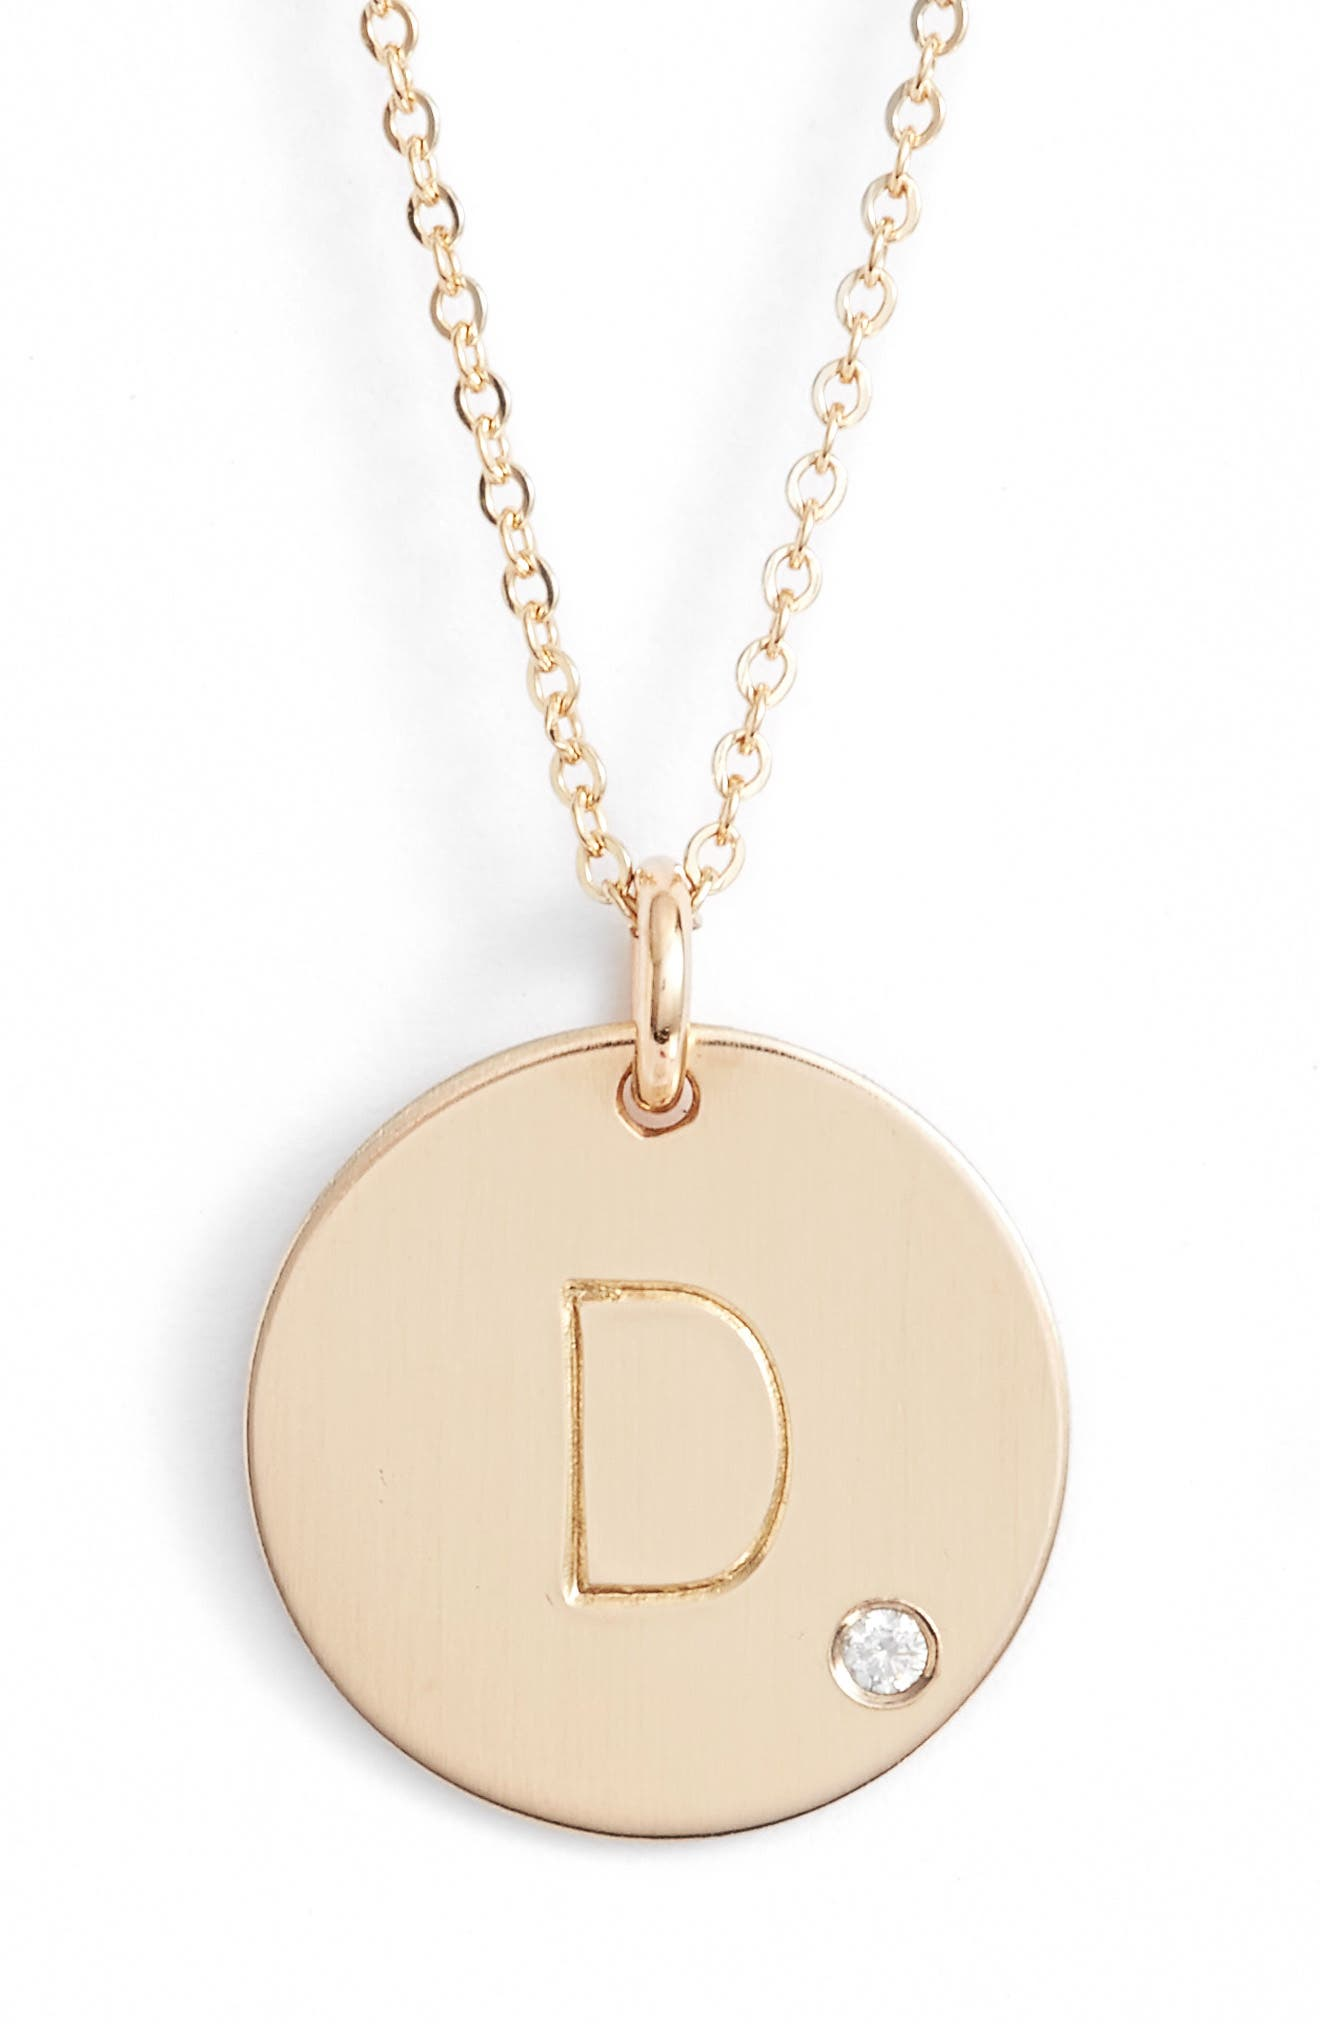 Diamond Initial Pendant Necklace,                             Main thumbnail 1, color,                             Gold/ D